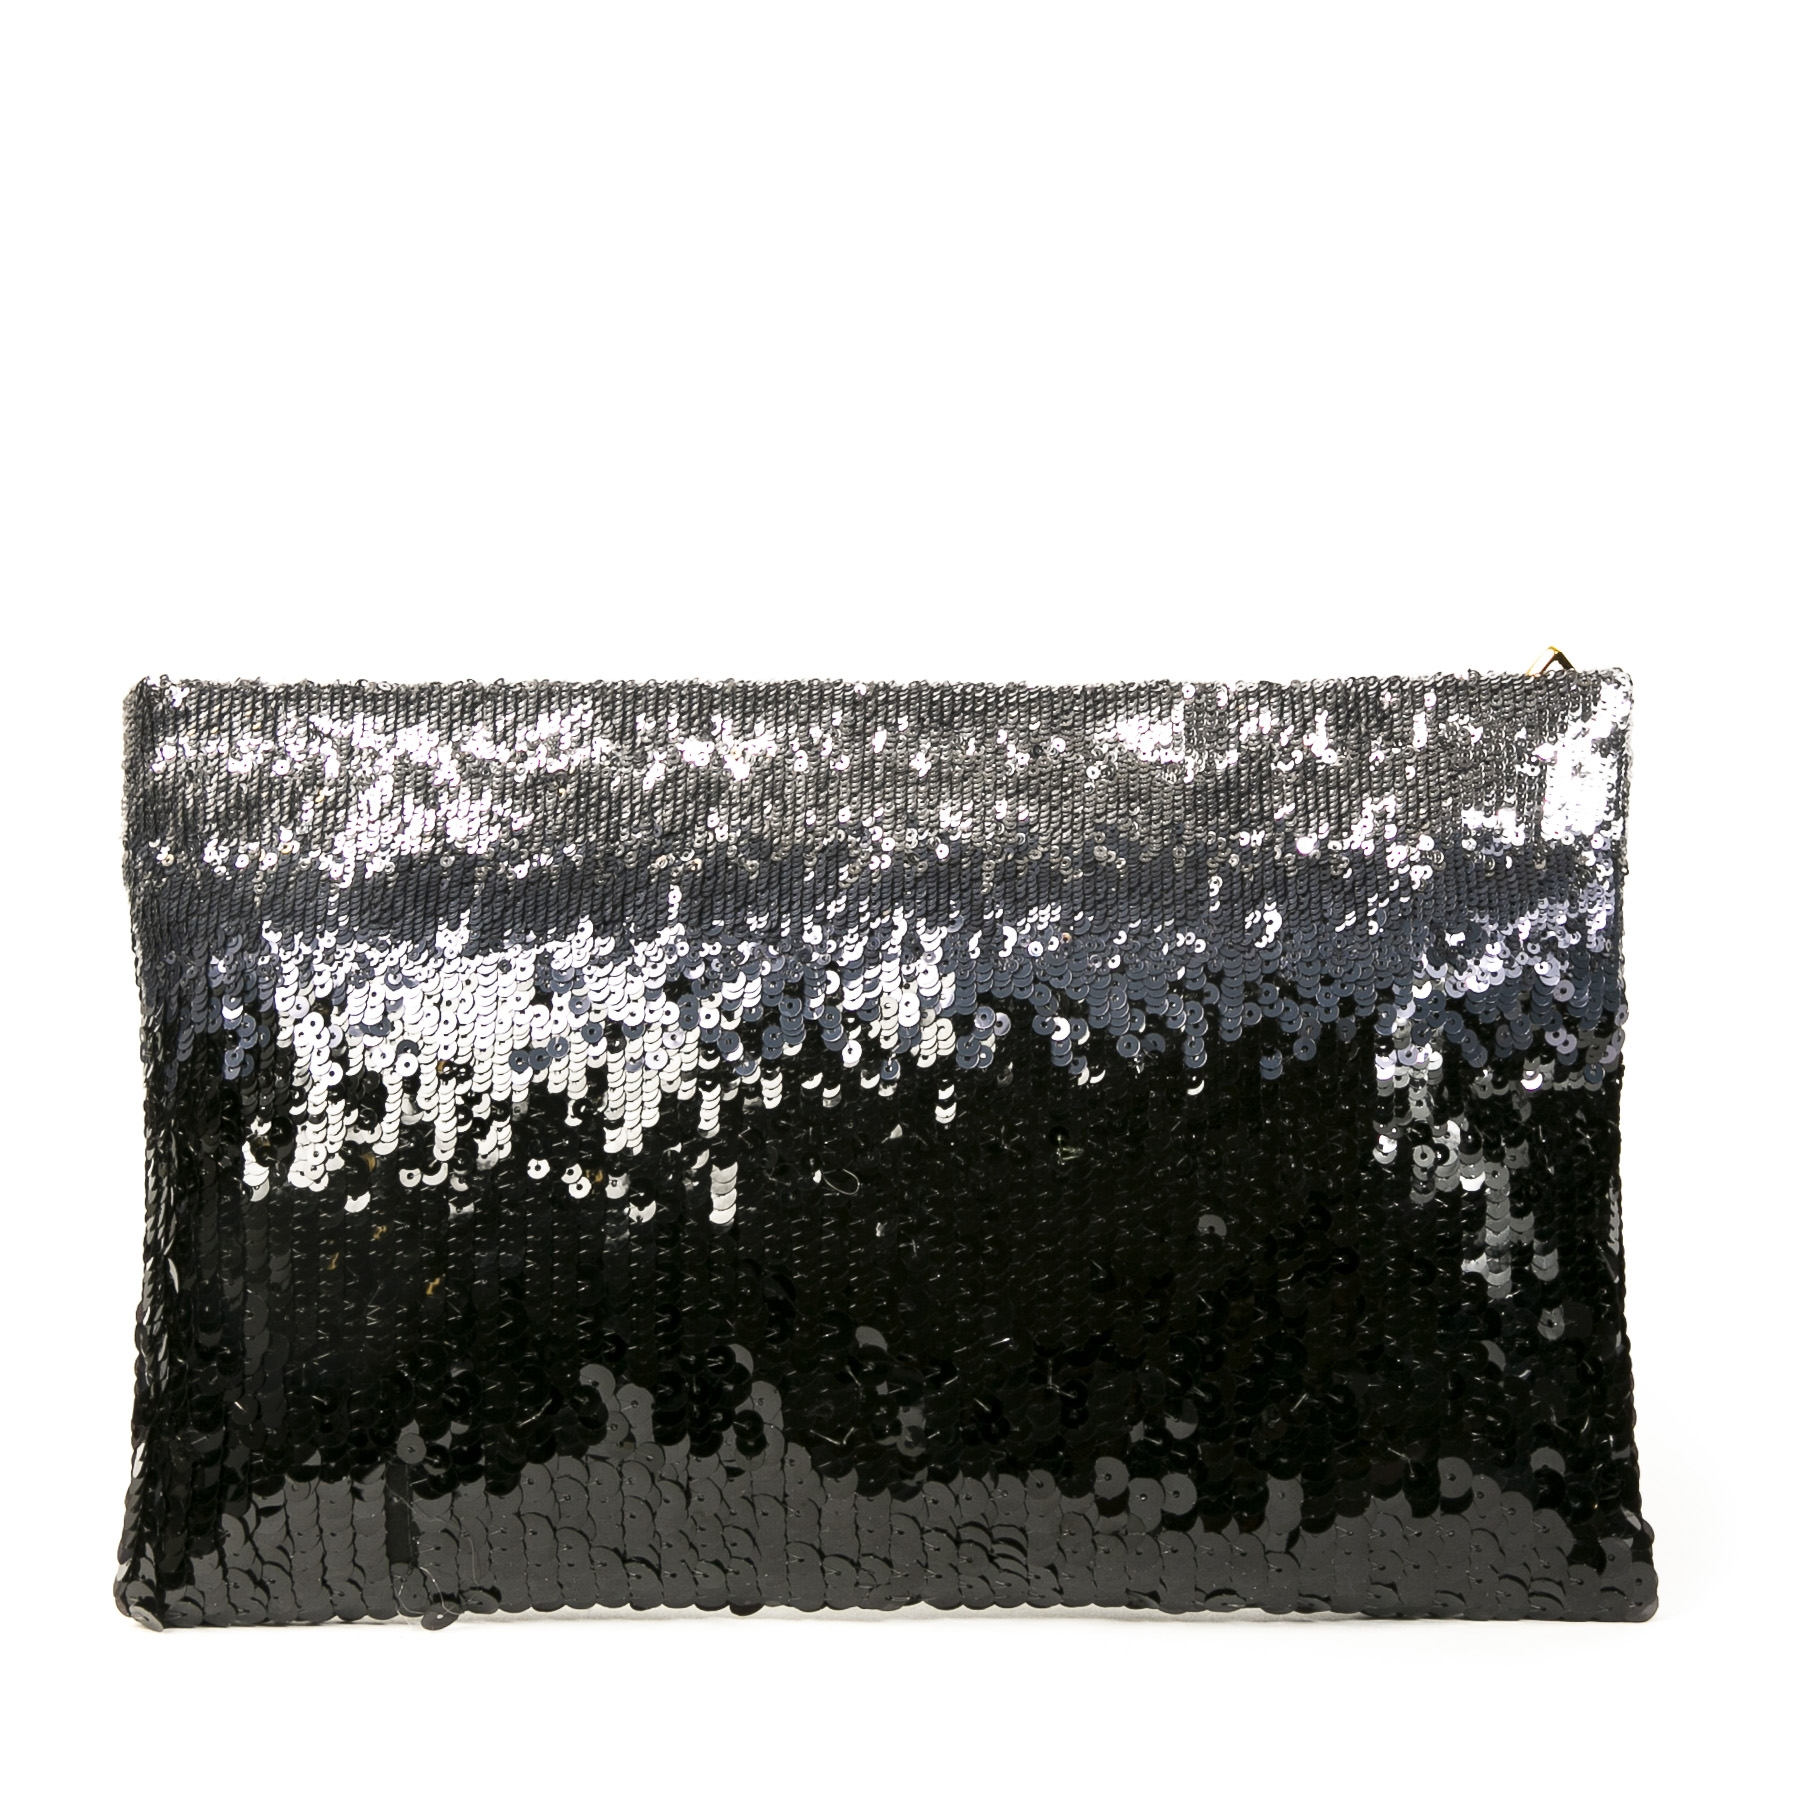 Authentic second-hand vintage  Prada Sequin Ombre Clutch Bag buy online webshop LabelLOV